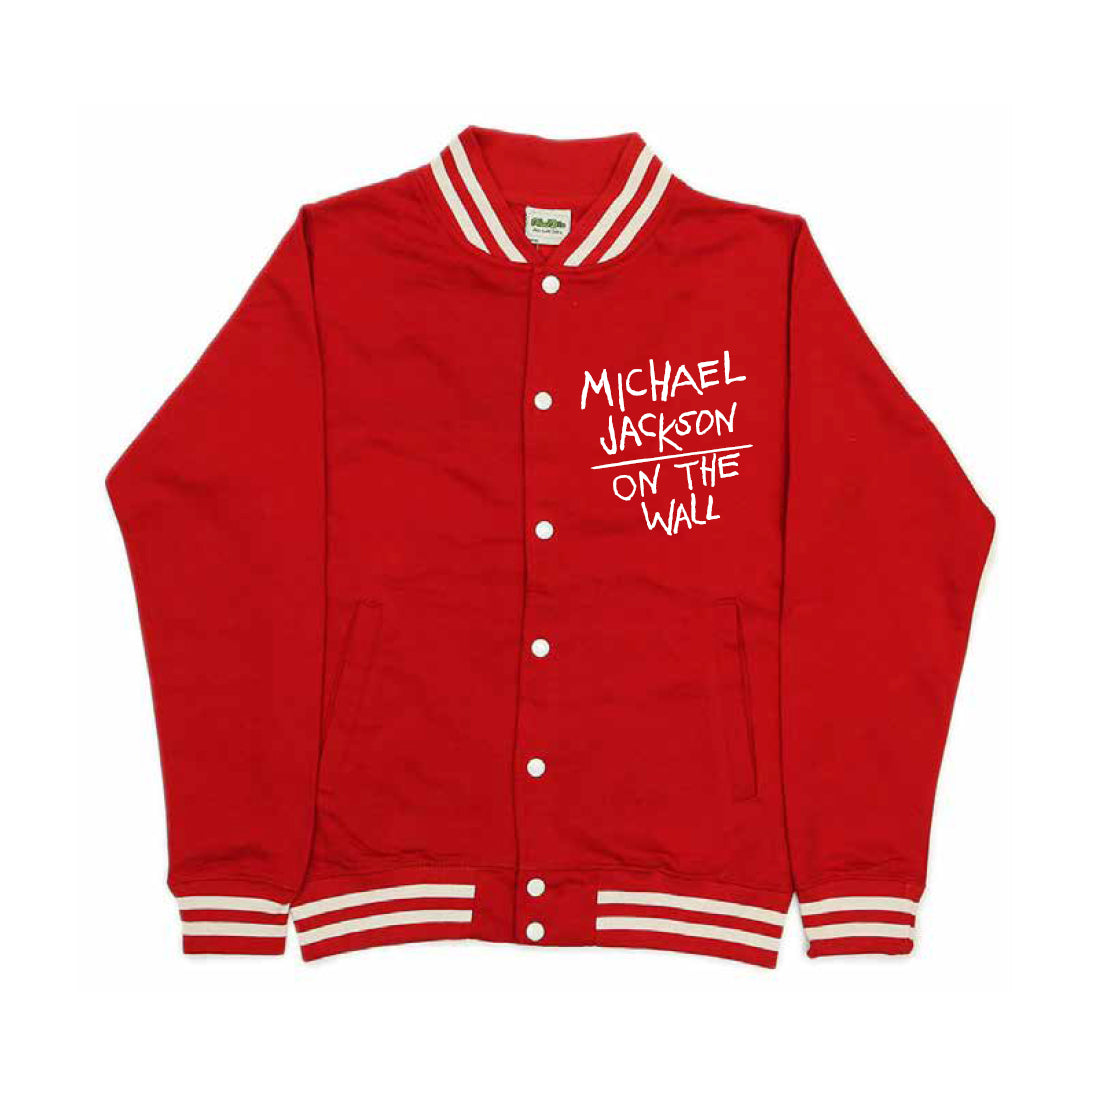 Michael Jackson On the Wall Red Jacket